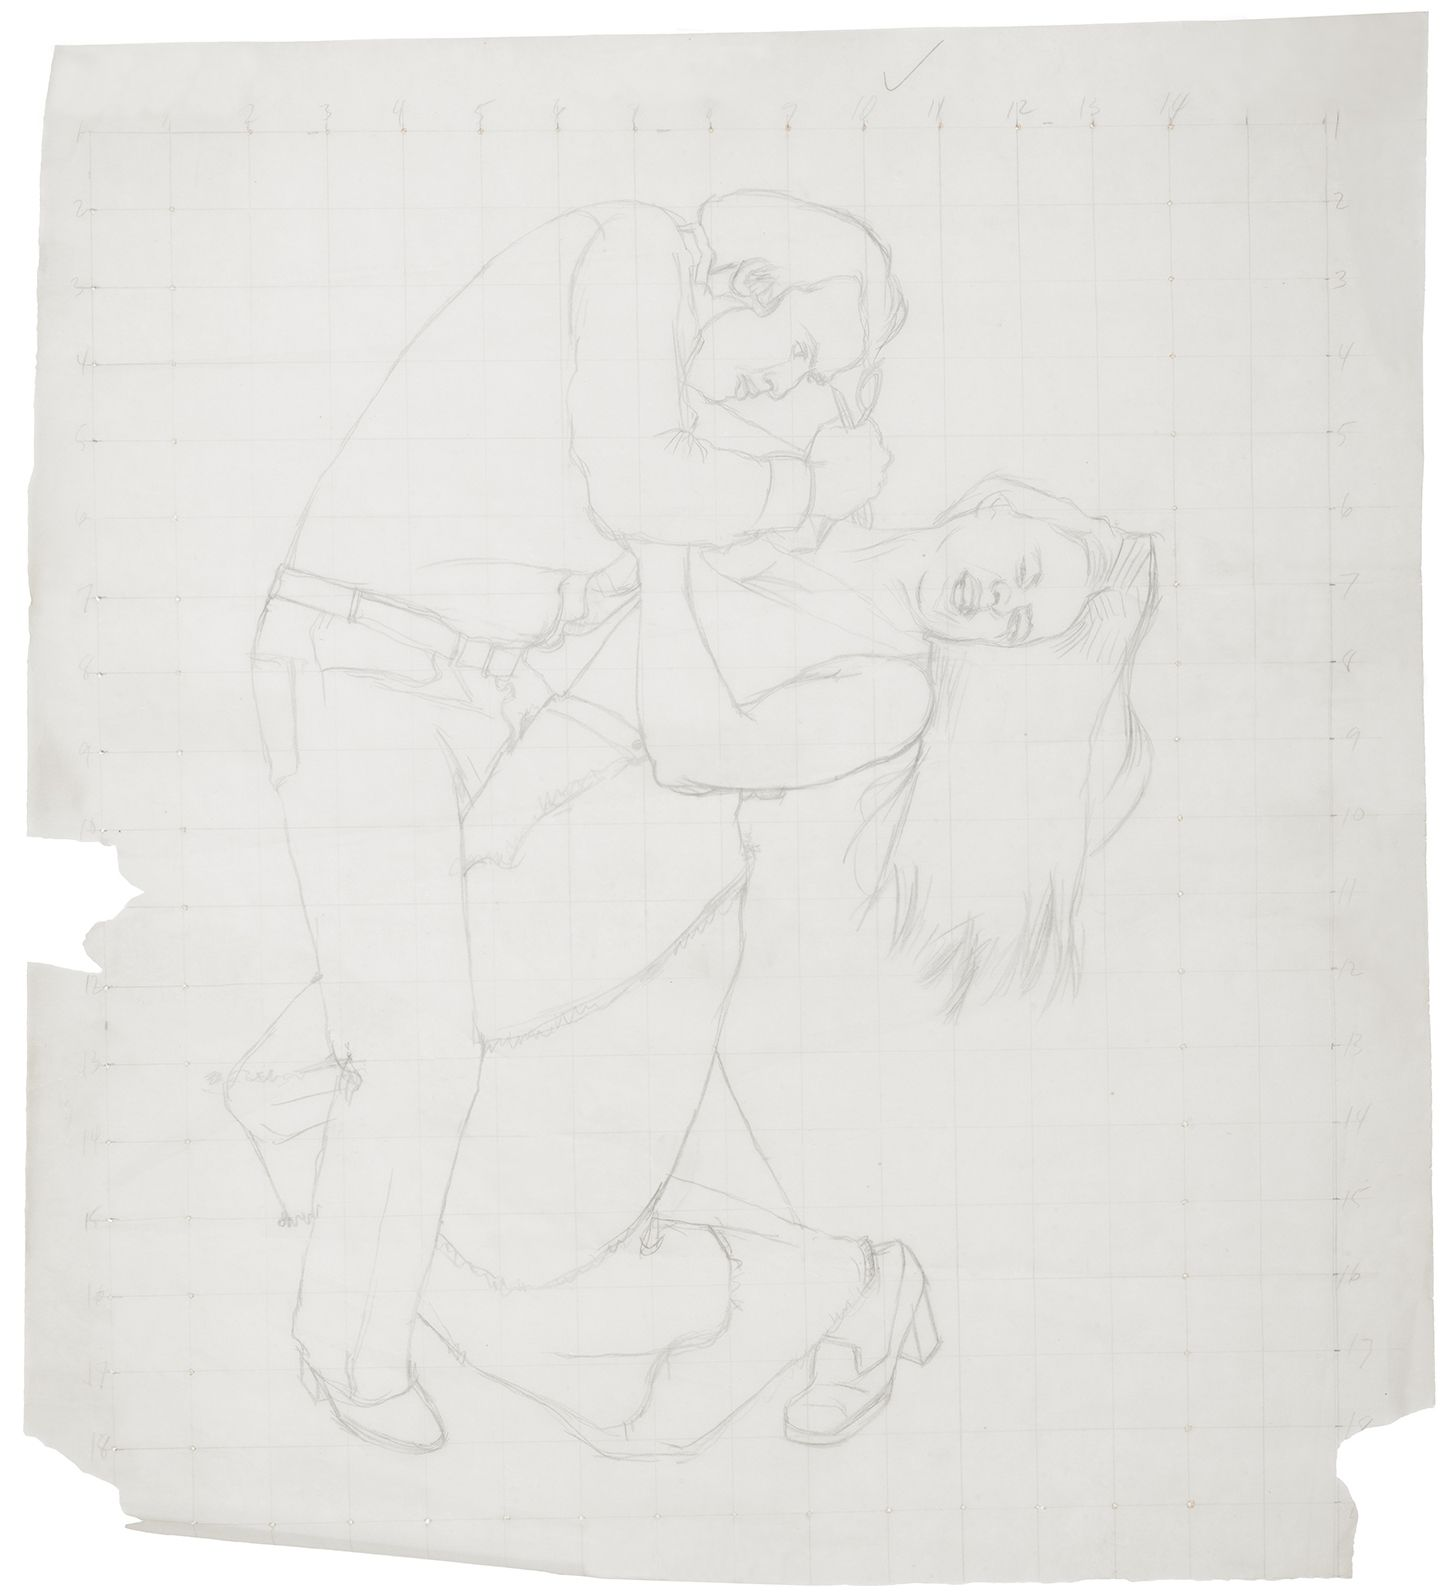 Drawing of man stabbing woman in the clavicle area